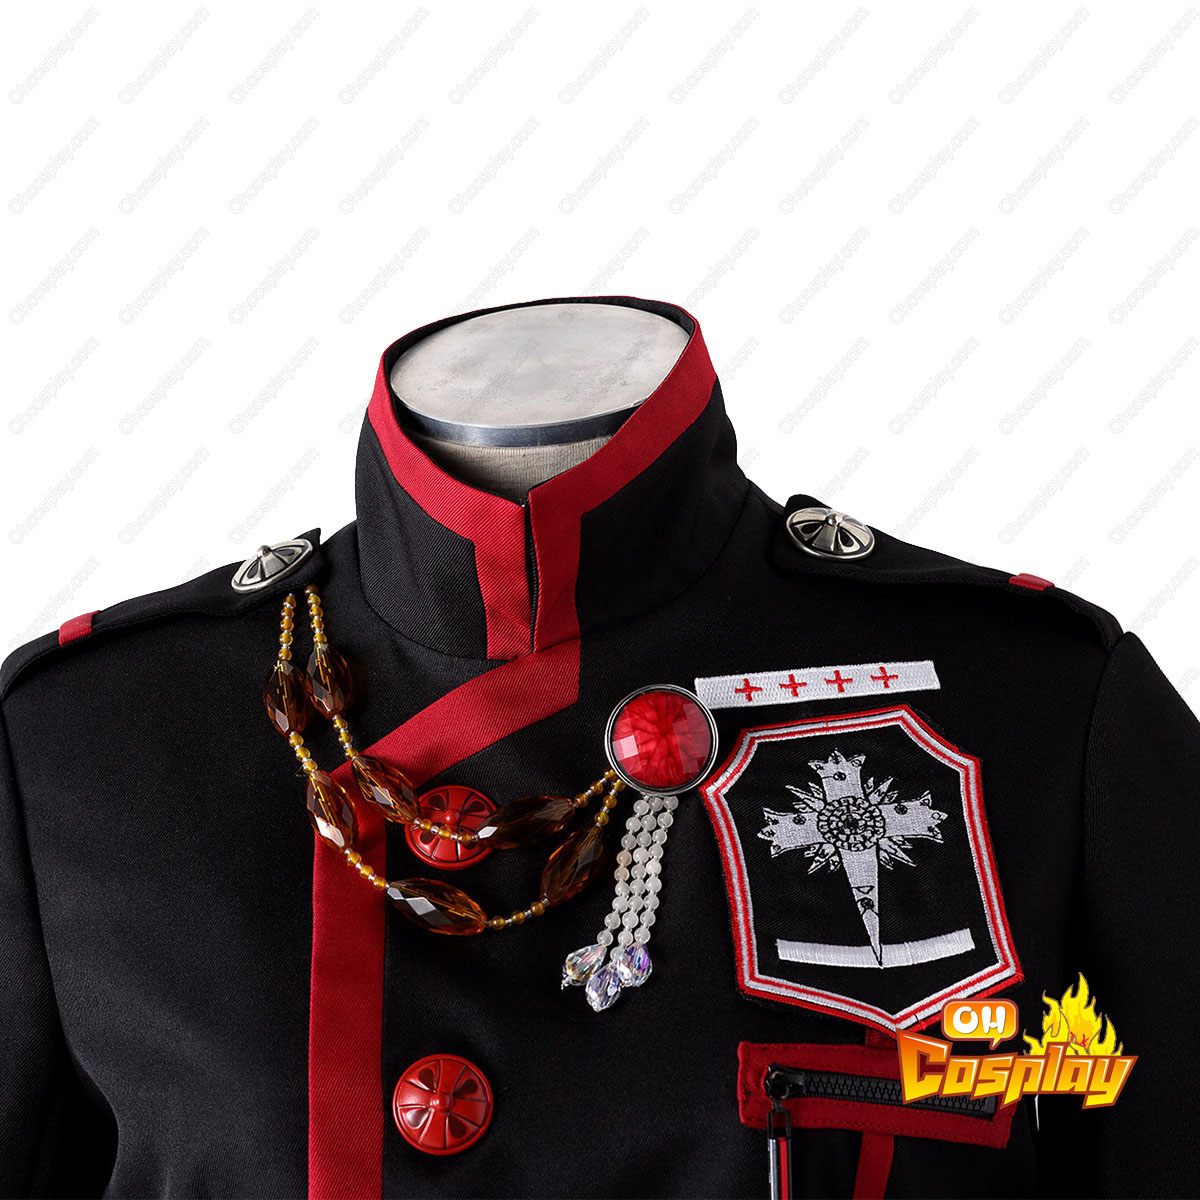 D.Gray-man Linali Lee 3RD Cosplay Costumes Deluxe Edition